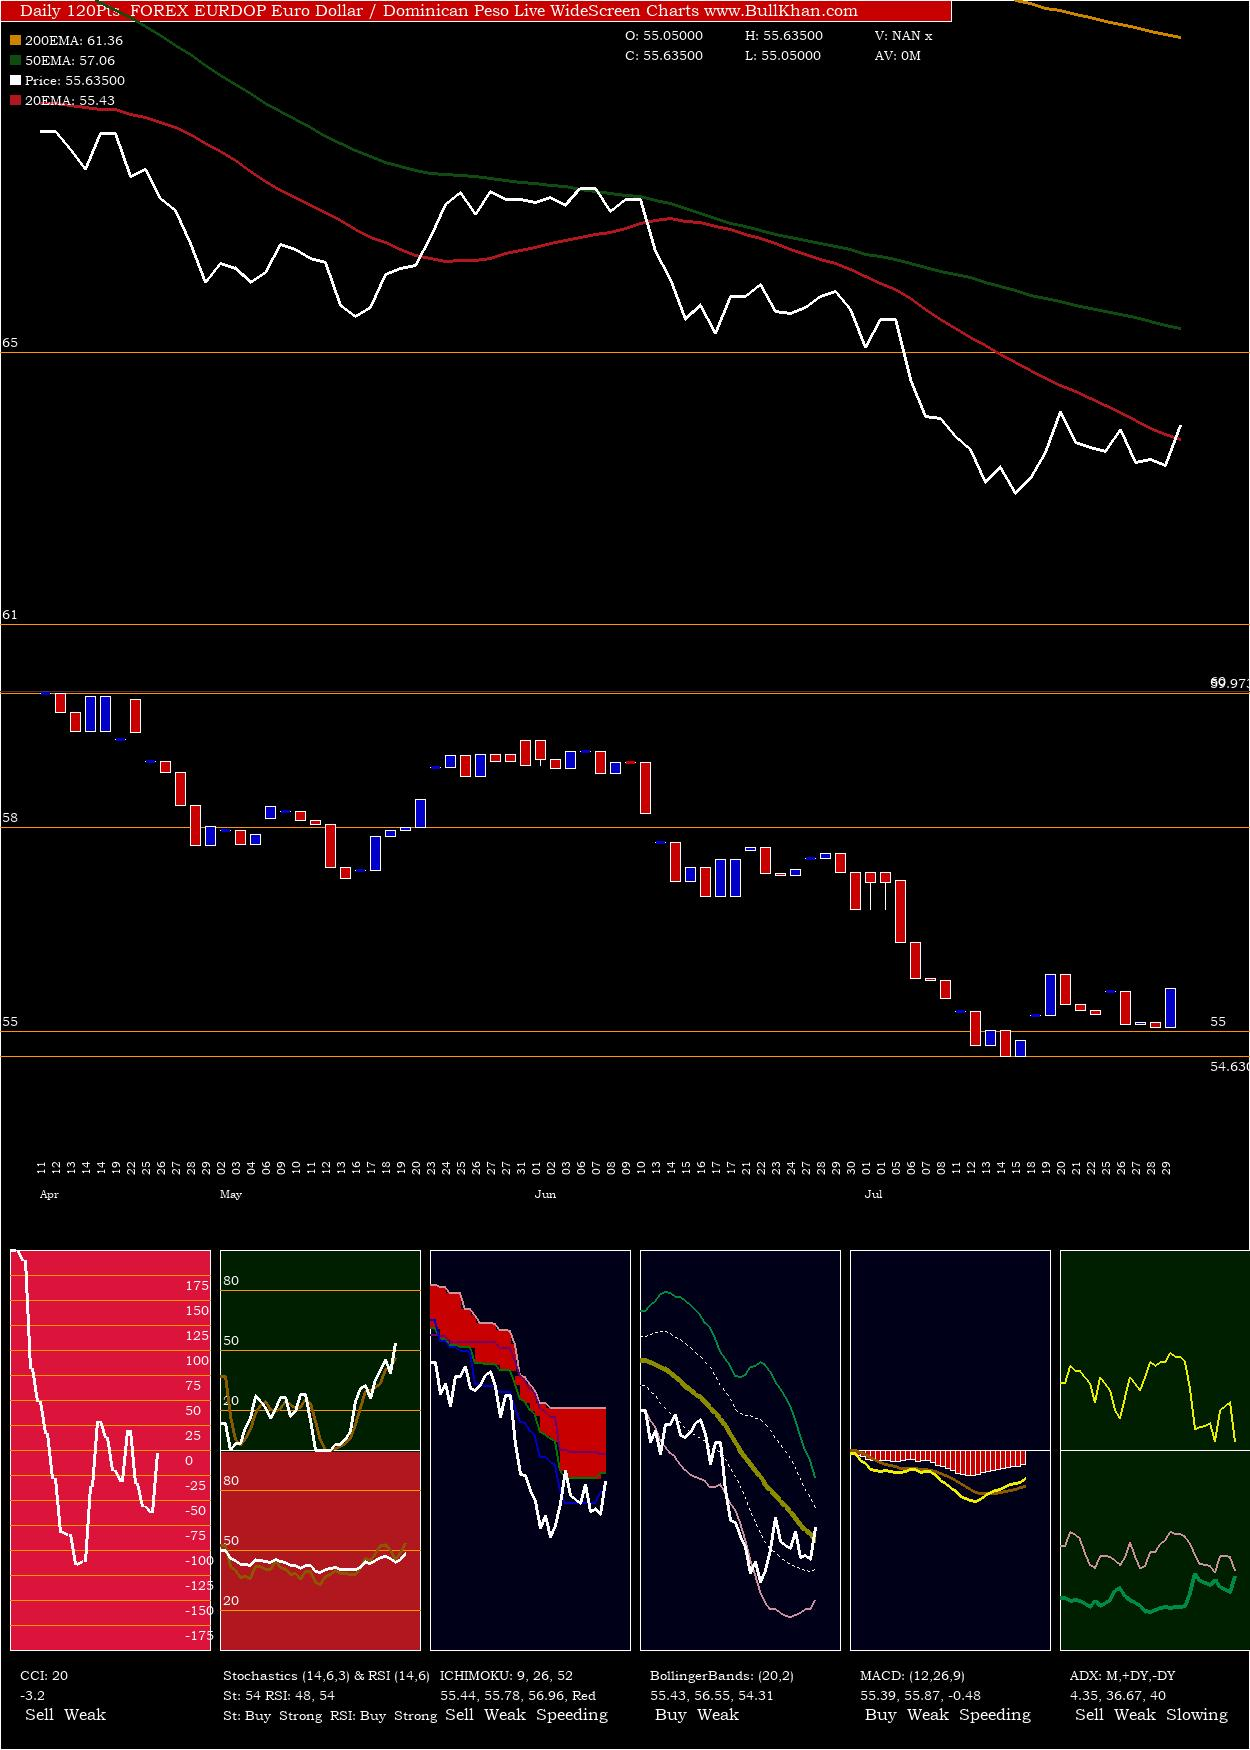 Euro Dollar / Dominican Peso charts and indicators